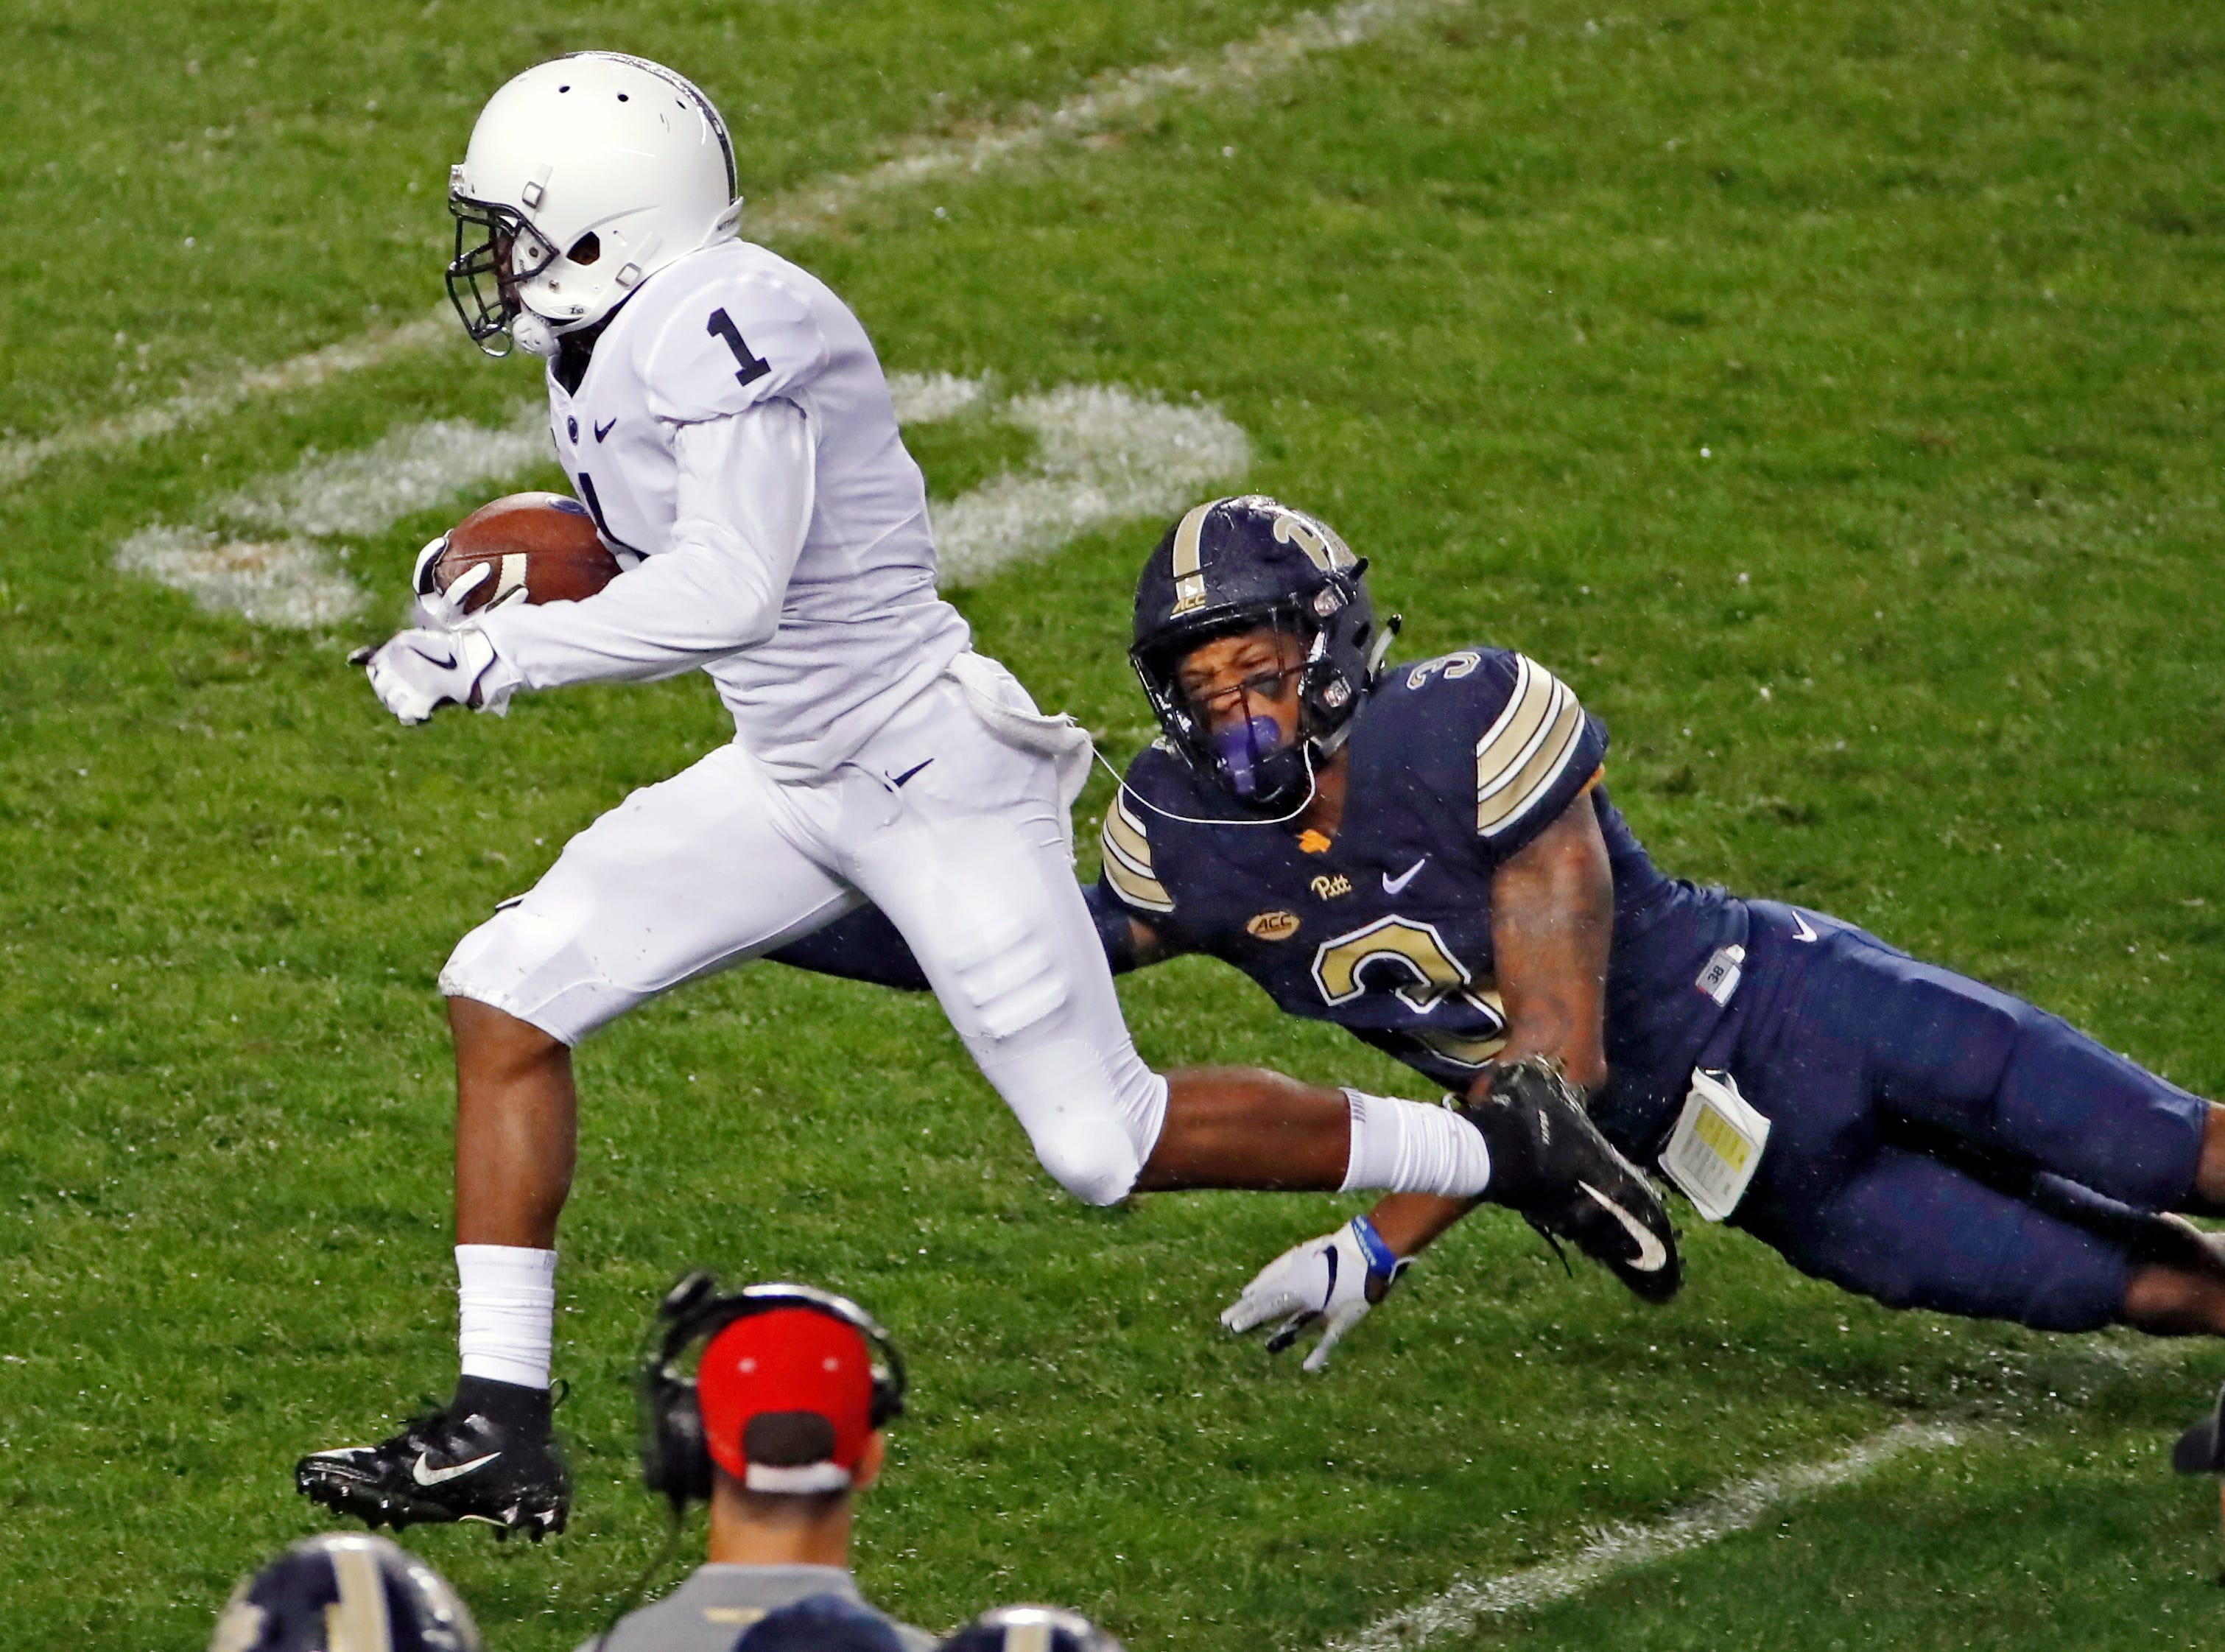 Penn State wide receiver KJ Hamler (1) runs through a tackle-attempt by Pittsburgh defensive back Damar Hamlin (3) en route to a touchdown during the first half of an NCAA college football game in Pittsburgh, Saturday, Sept. 8, 2018.